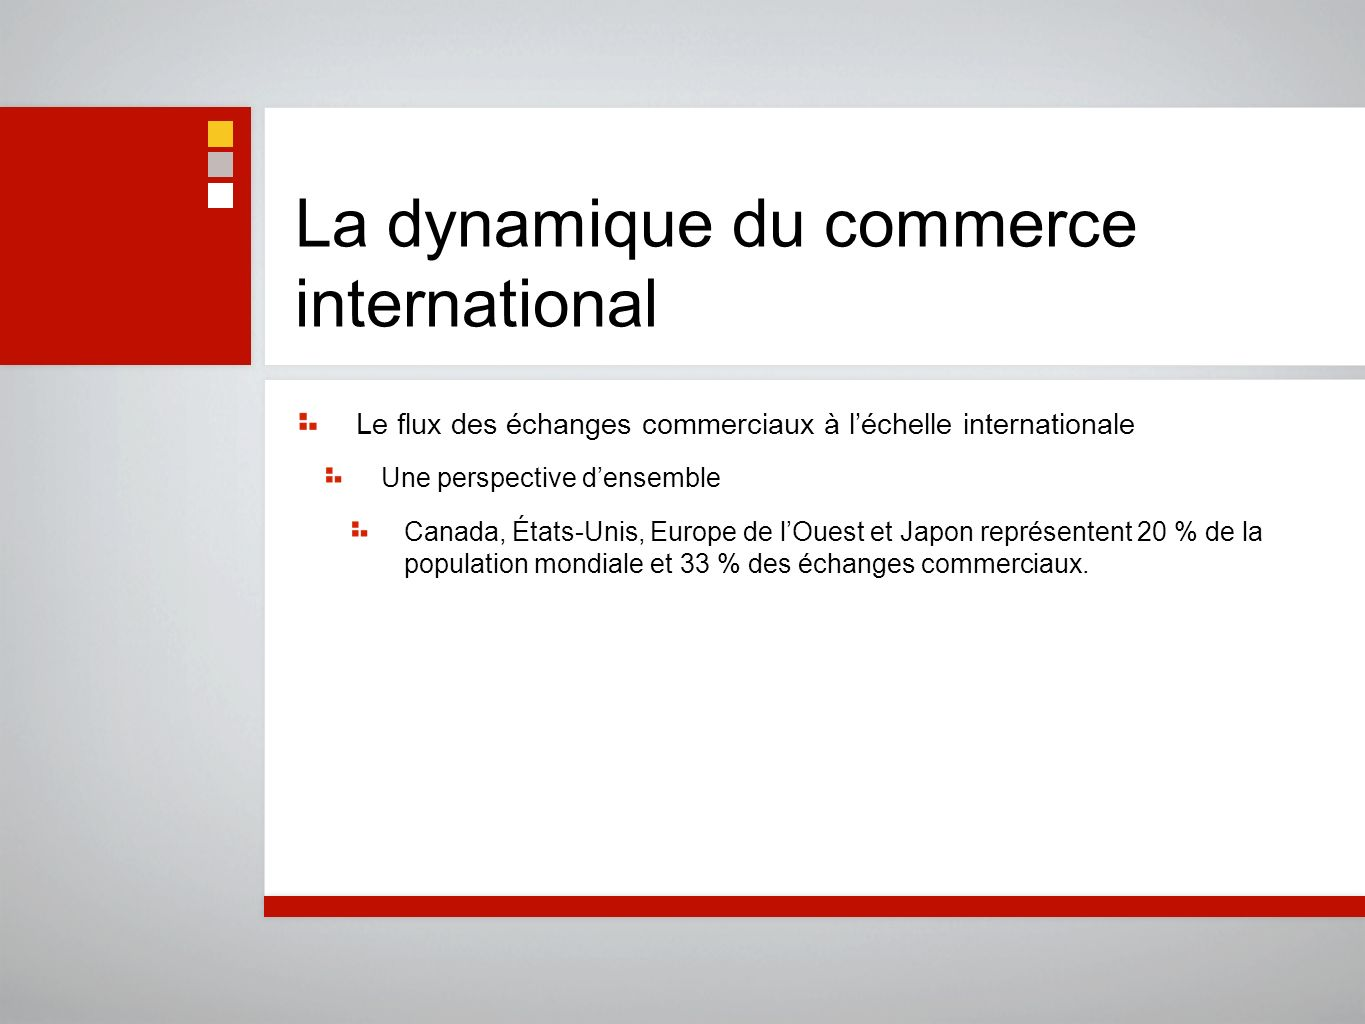 La dynamique du commerce international